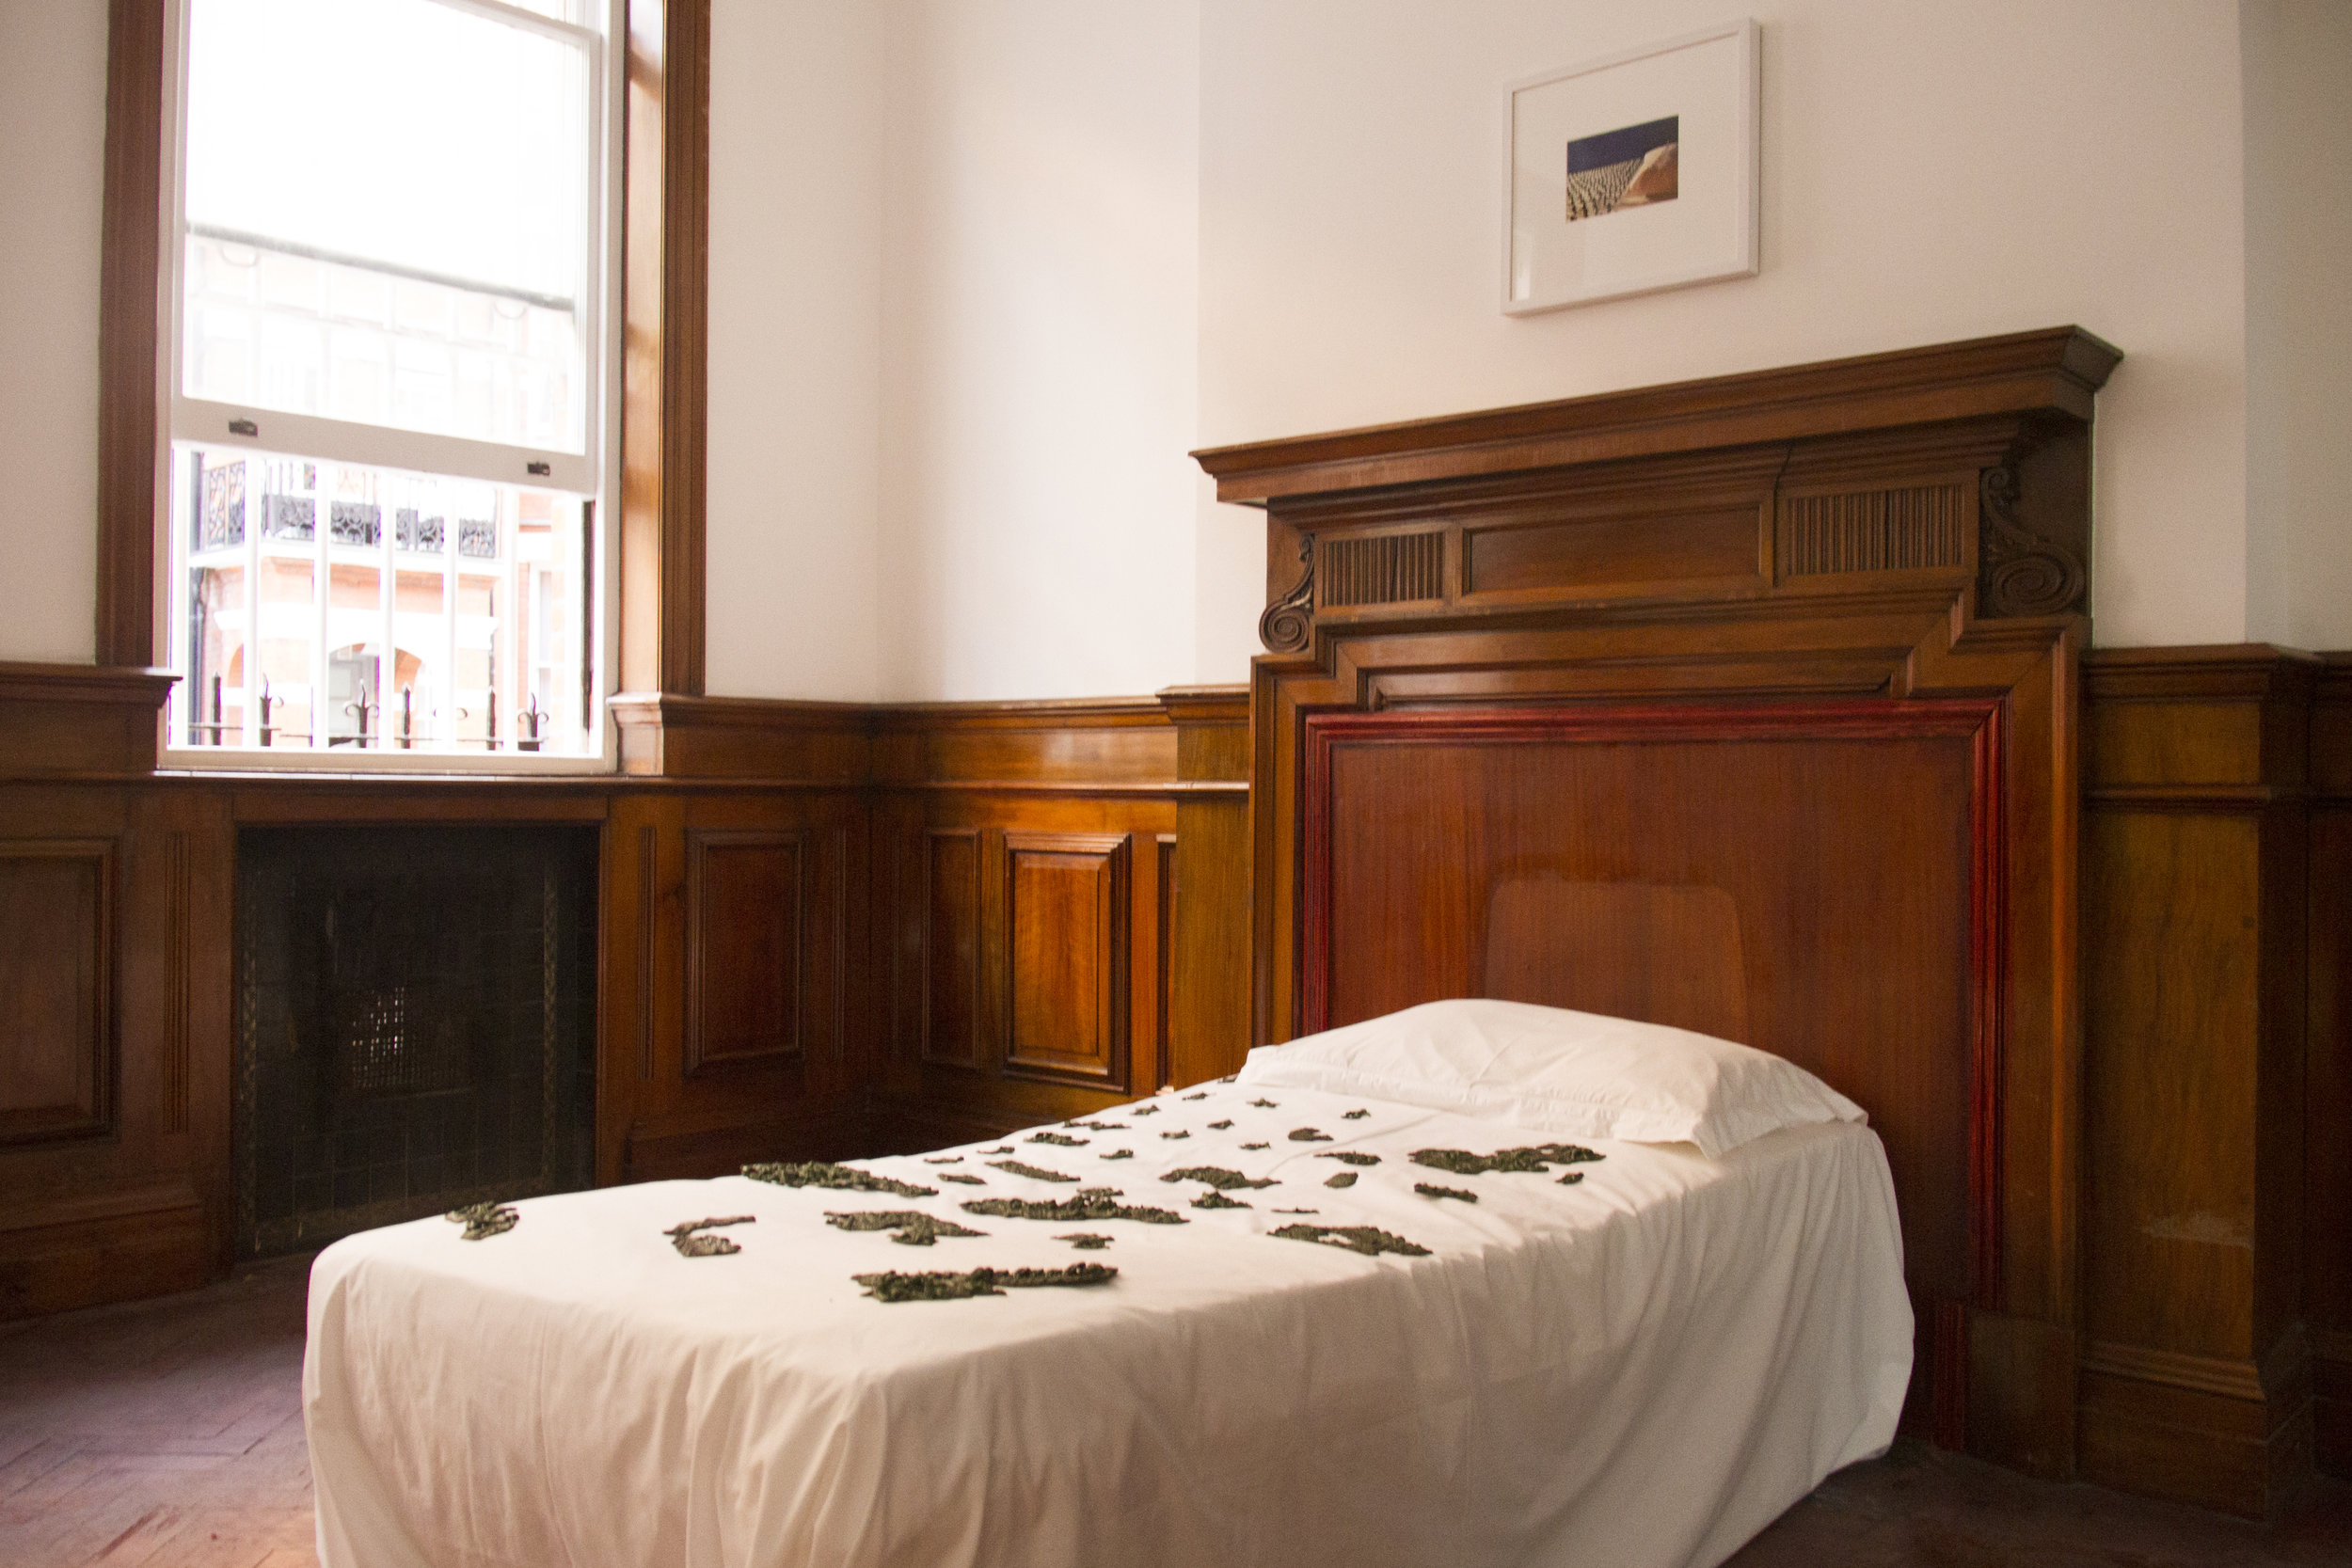 Over My Bed, Fadi Al-Hamwi, Toy soldiers and bed installation, 2018